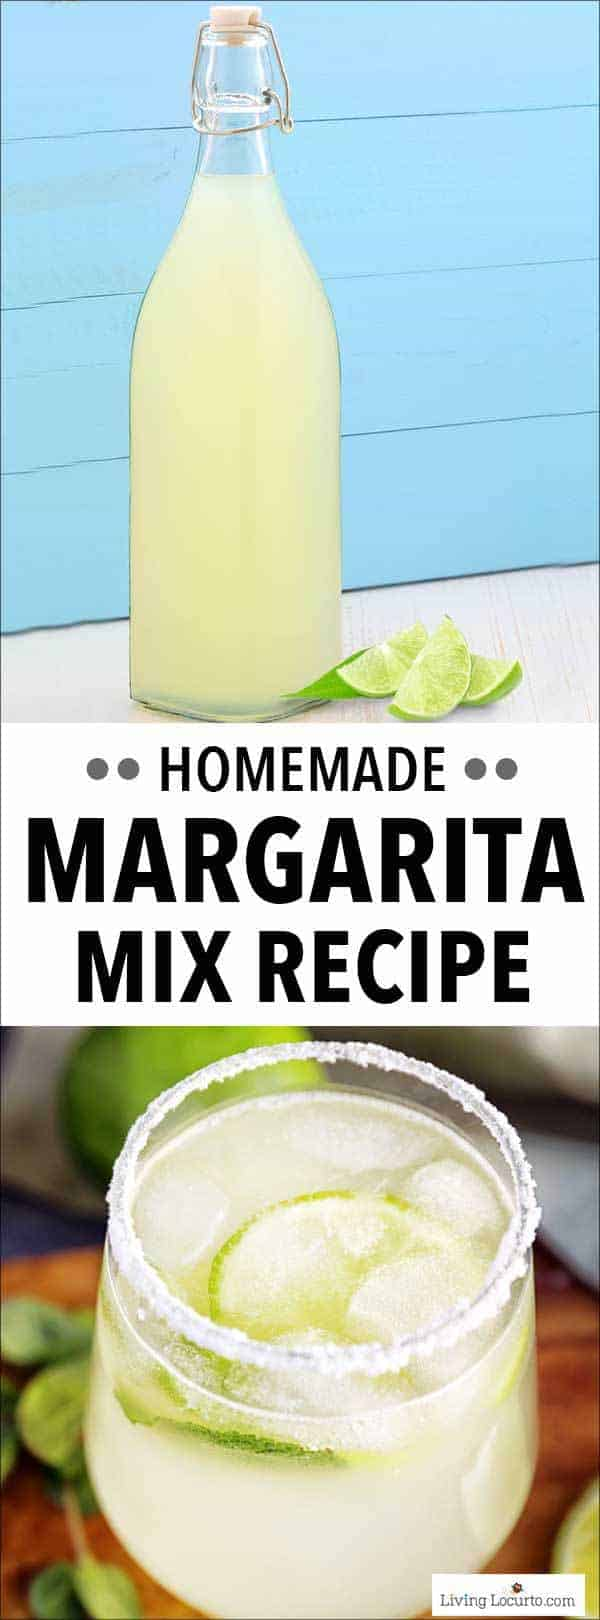 This Margarita Mix recipe is an easy homemade mix to make at home. Add tequila for a pitcher of margaritas or a margarita by the glass. This is a great cocktail recipe to make for your next party!